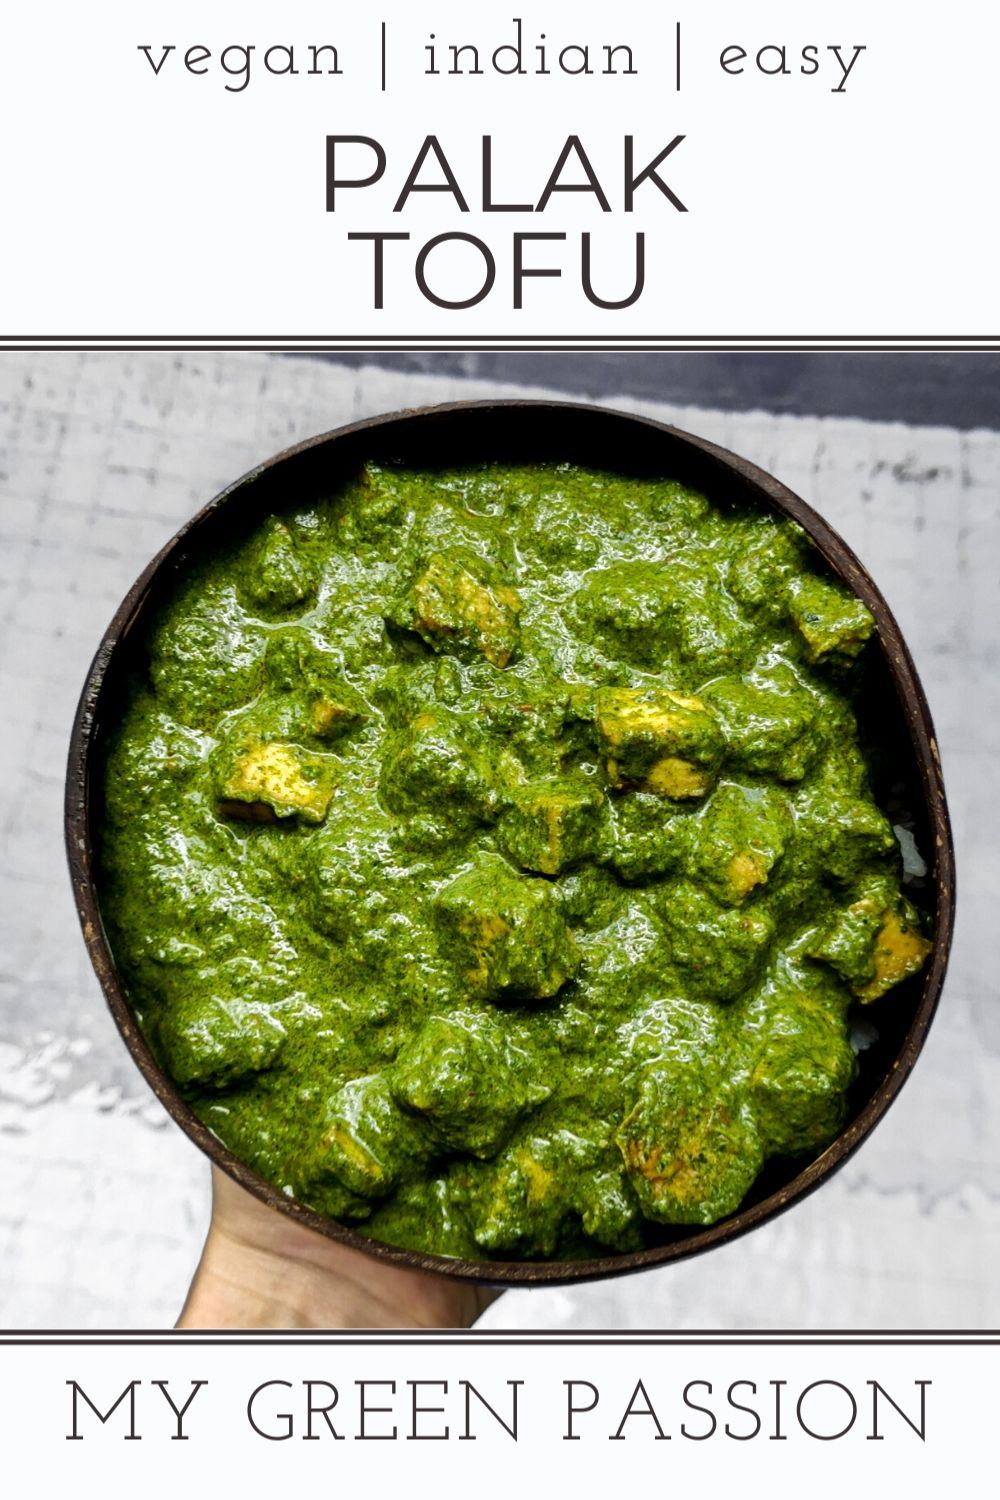 palak tofu vegan indian spinach tofu curry easy gluten-free